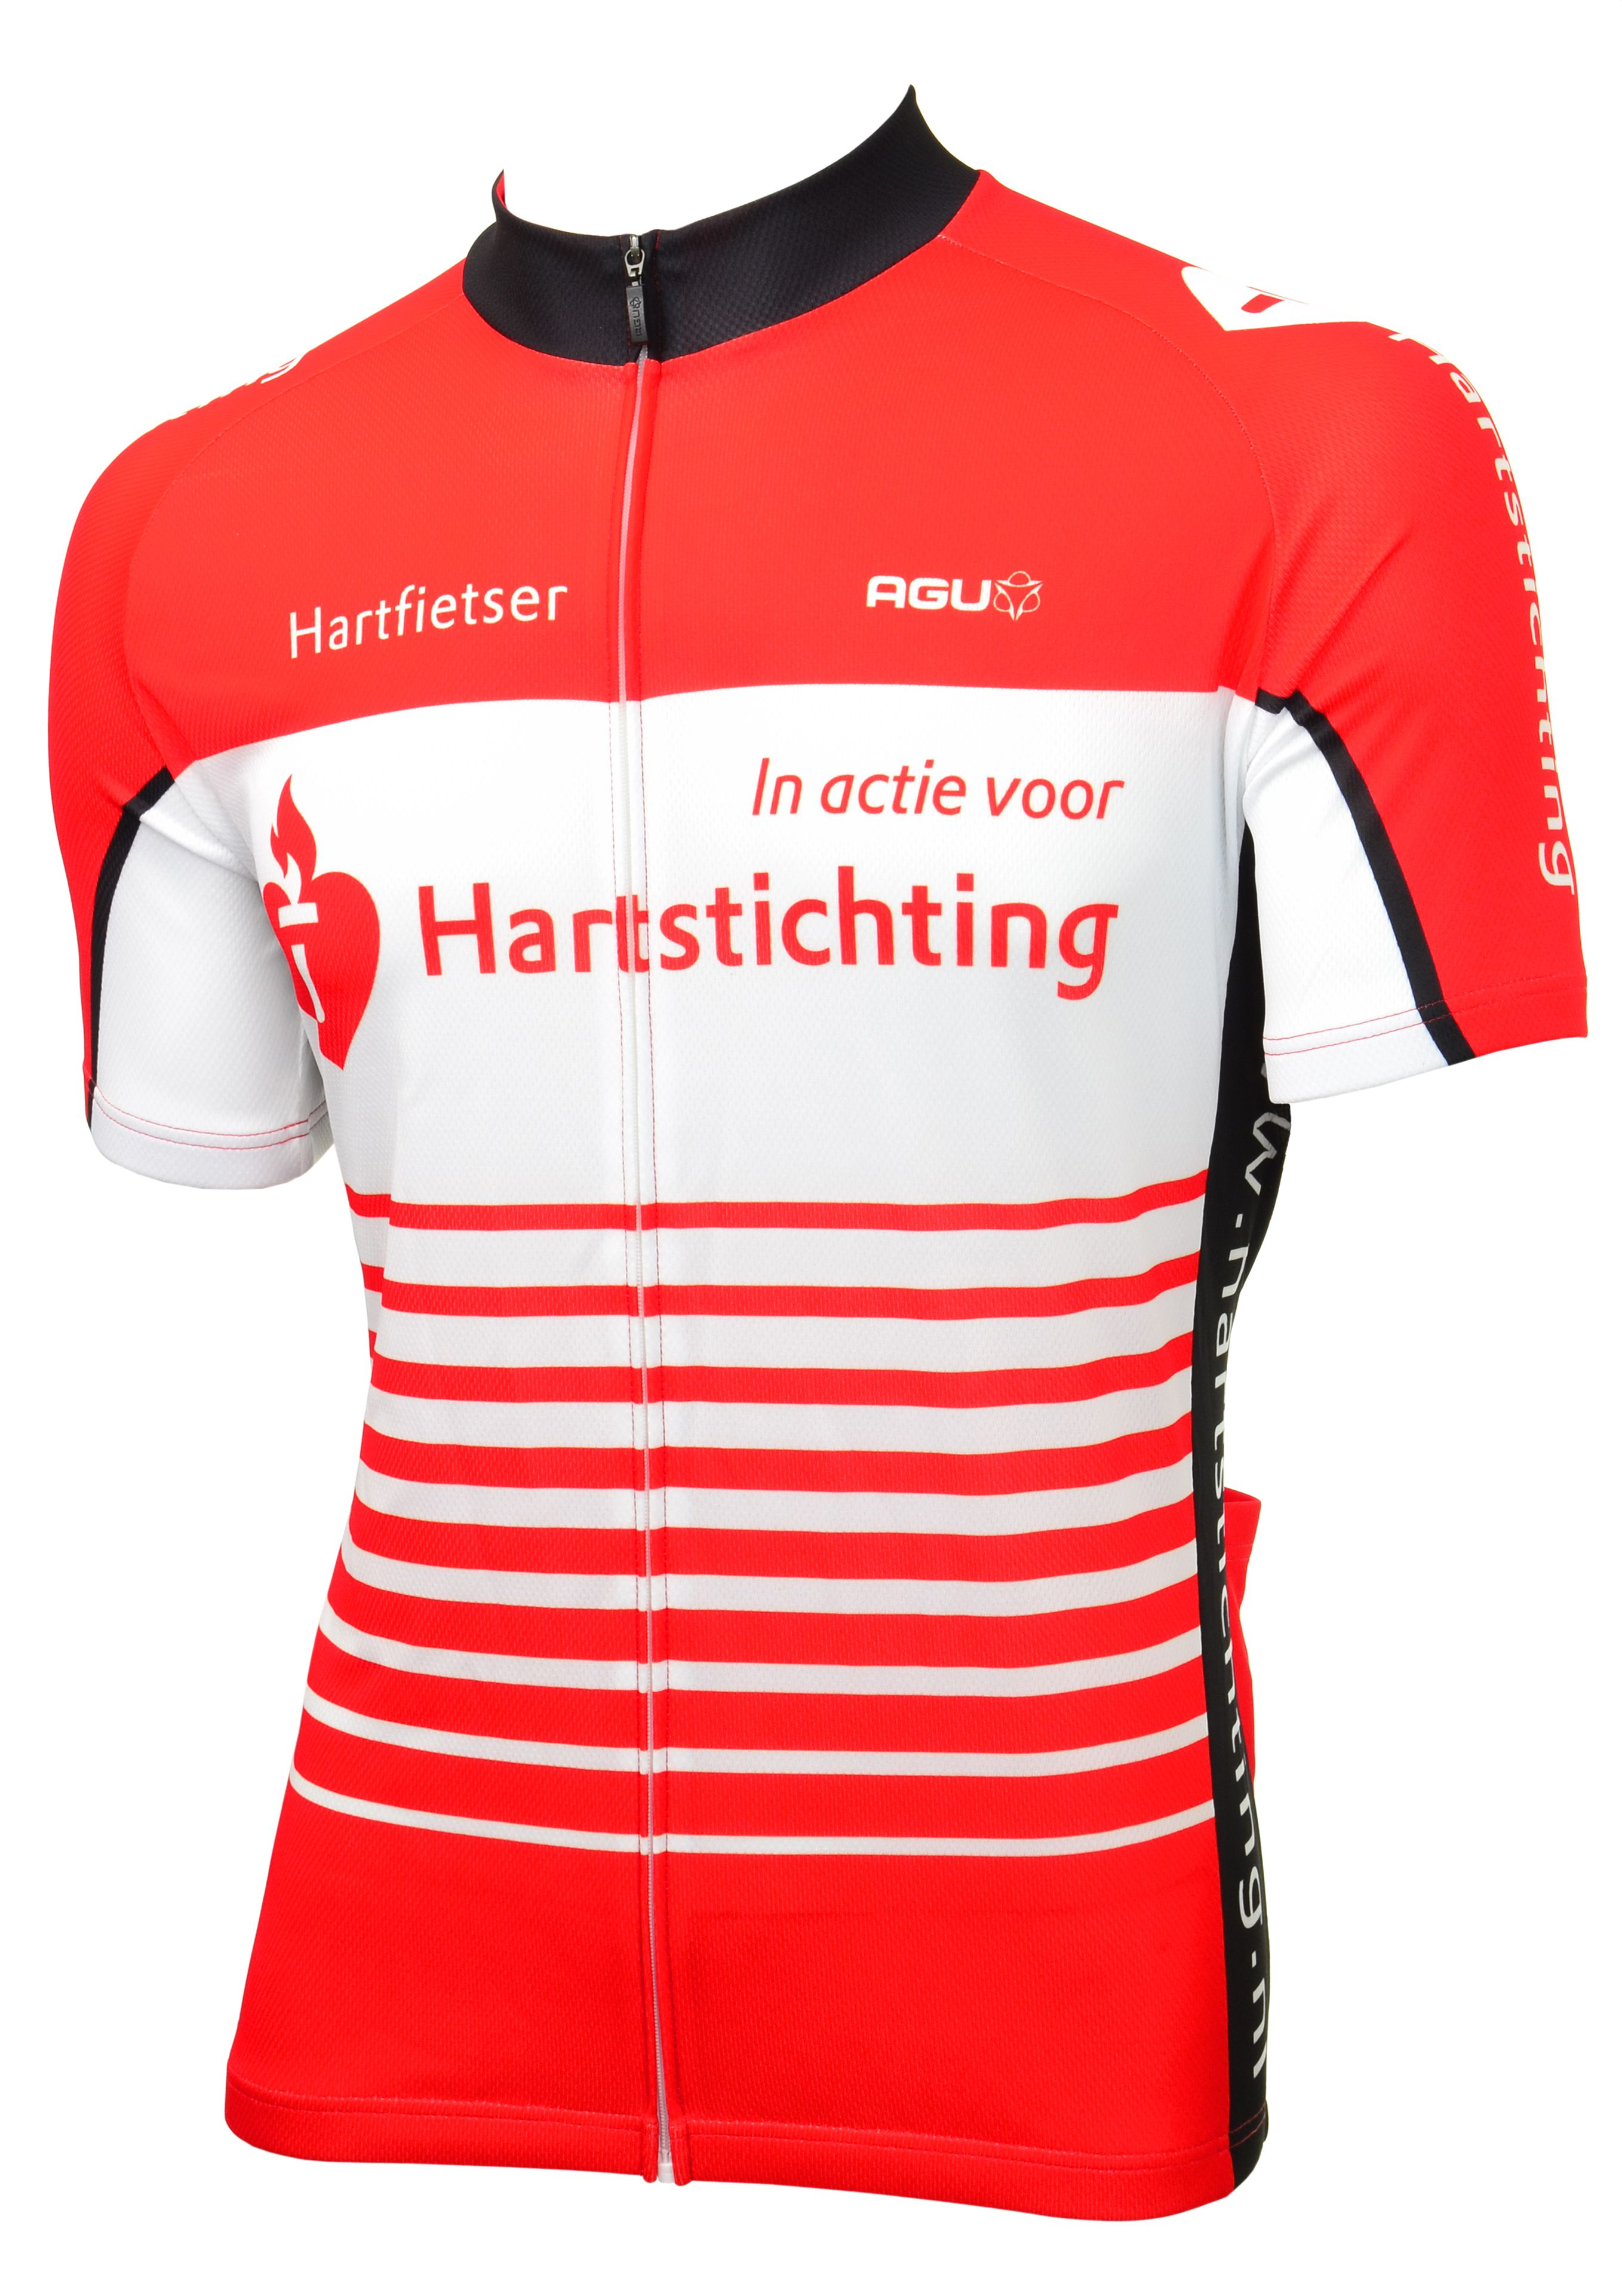 Cycling shirt design your own - Design Your Own Cycling Jersey By Agu Customized Cycling Apparel Designed For The